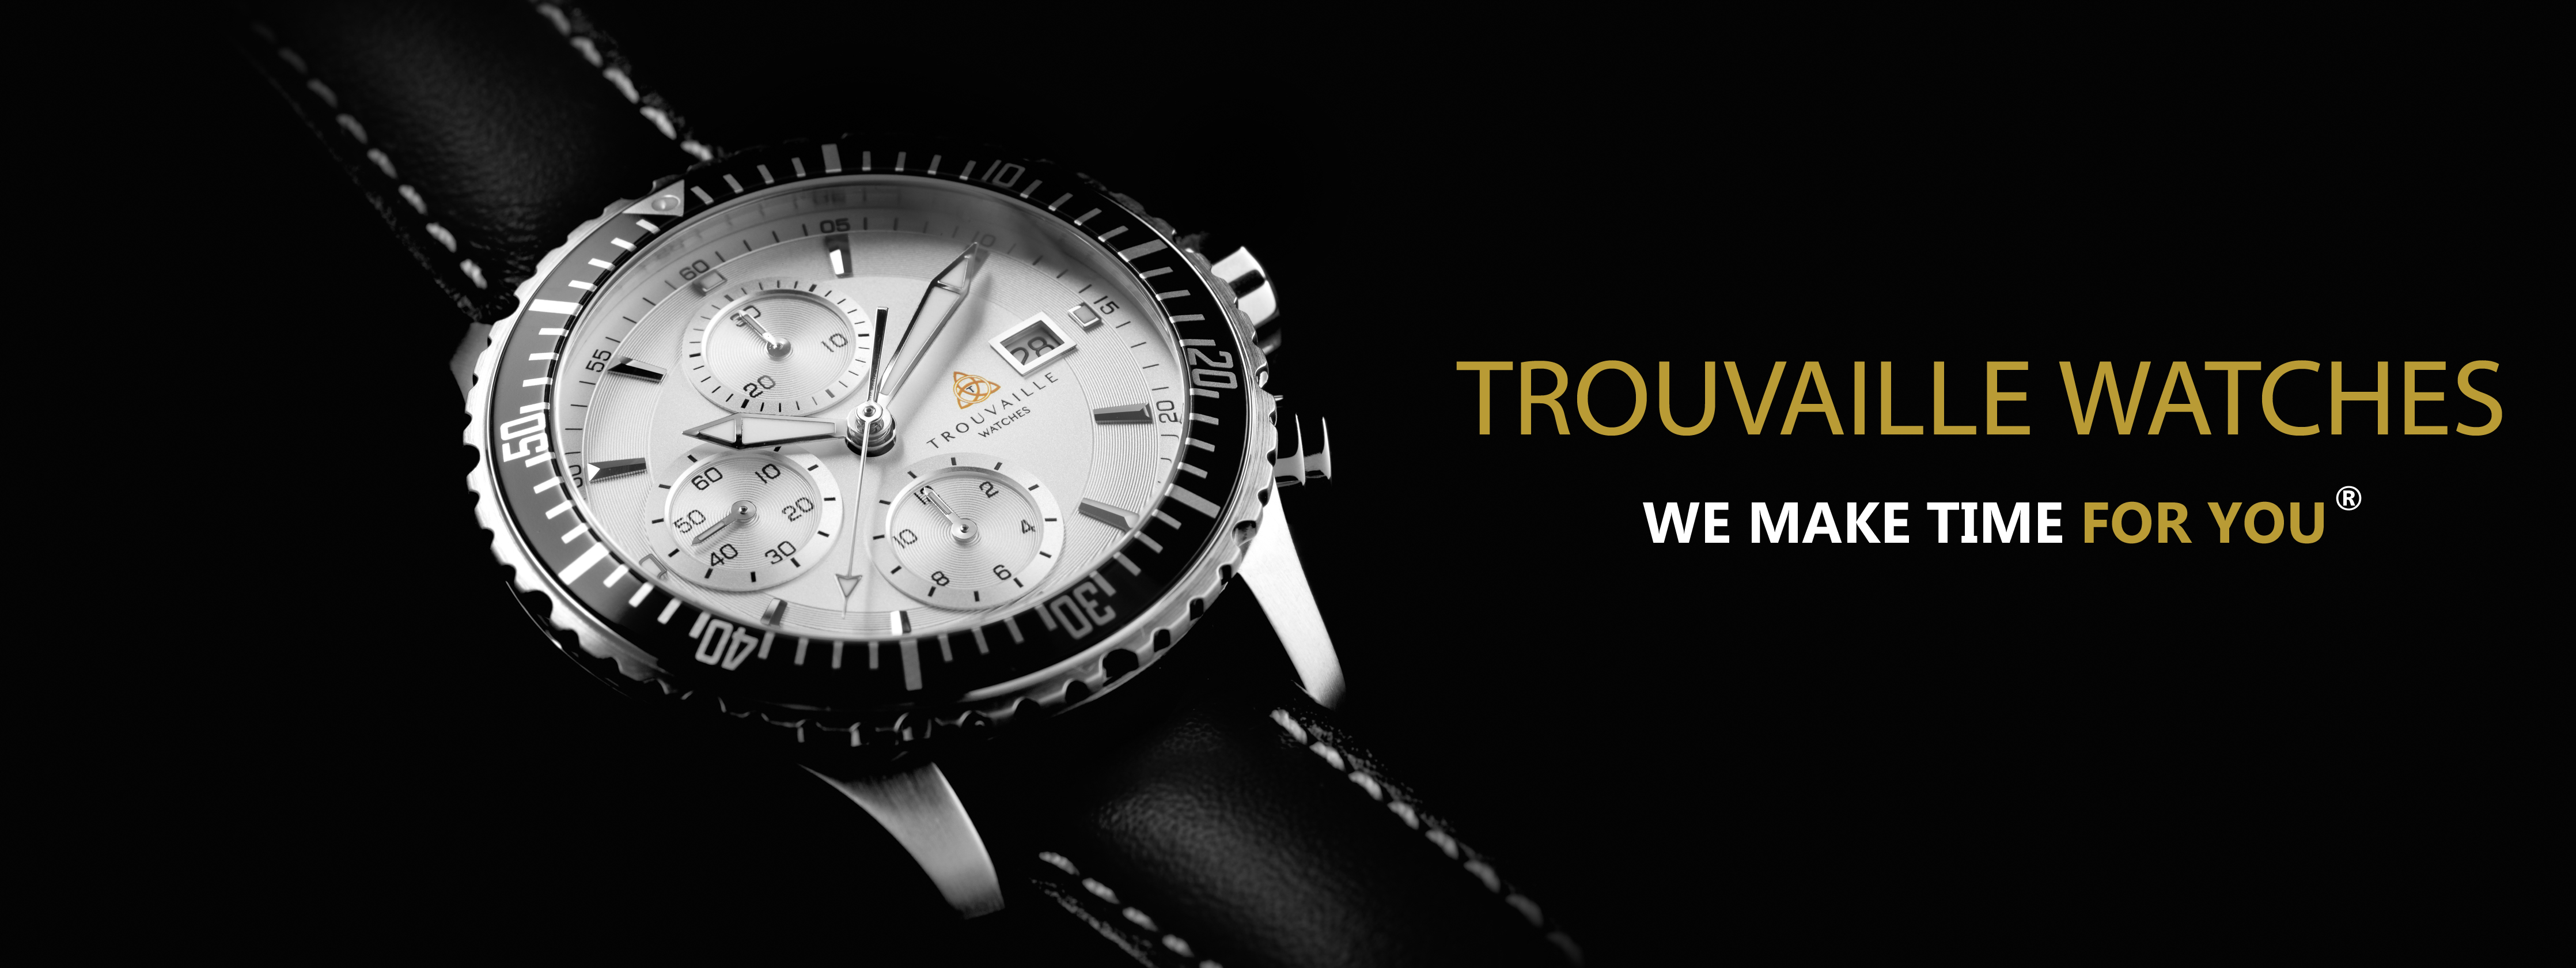 66225d0cb Amazon.com: Trouvaille Watches: All Watches